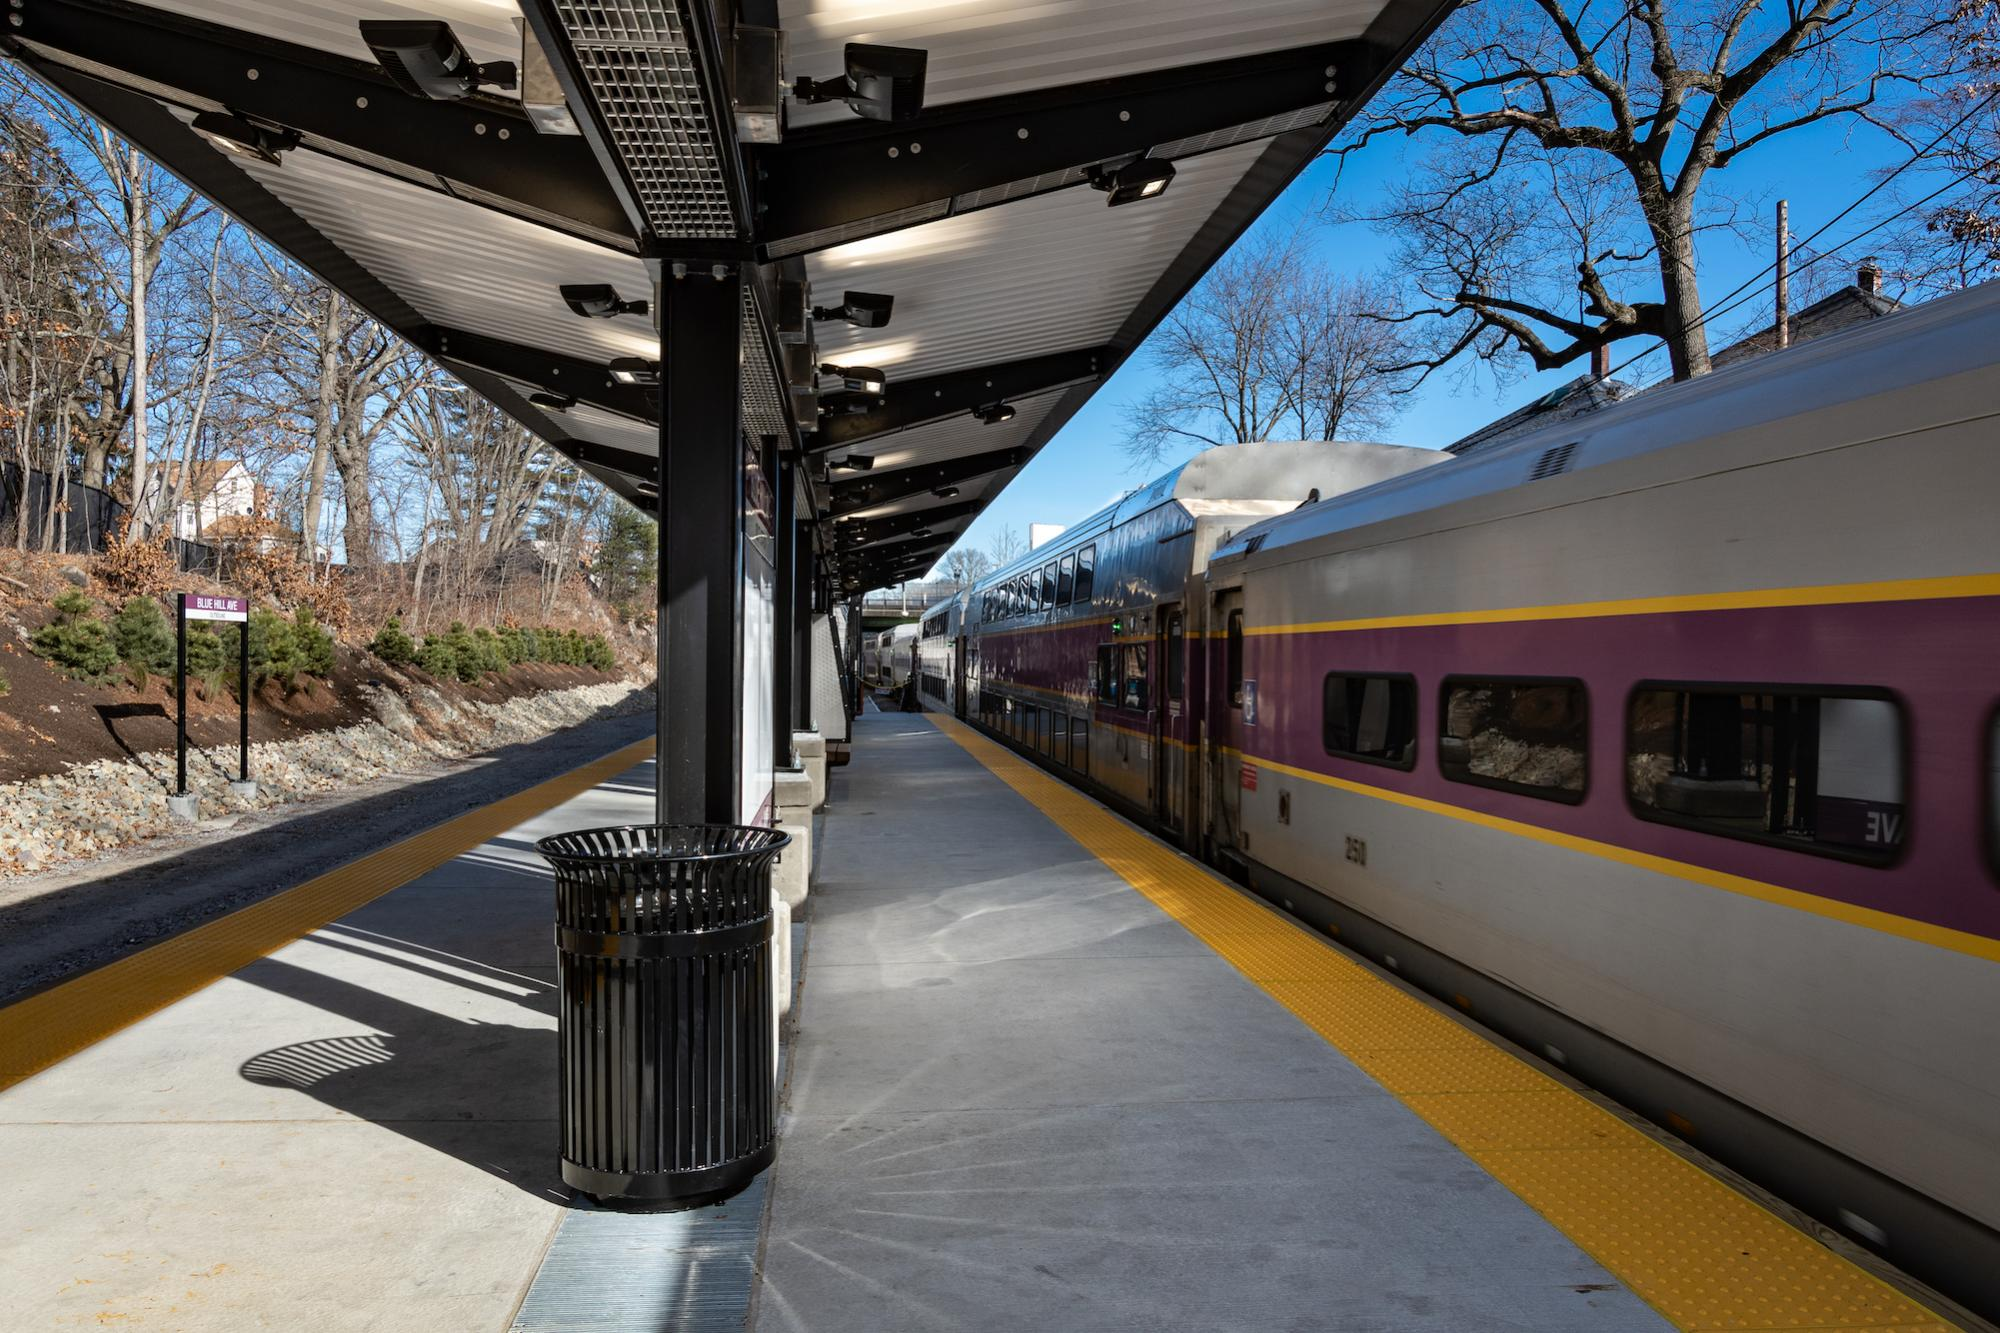 Station platform with an older Commuter Rail locomotive (January 2019)